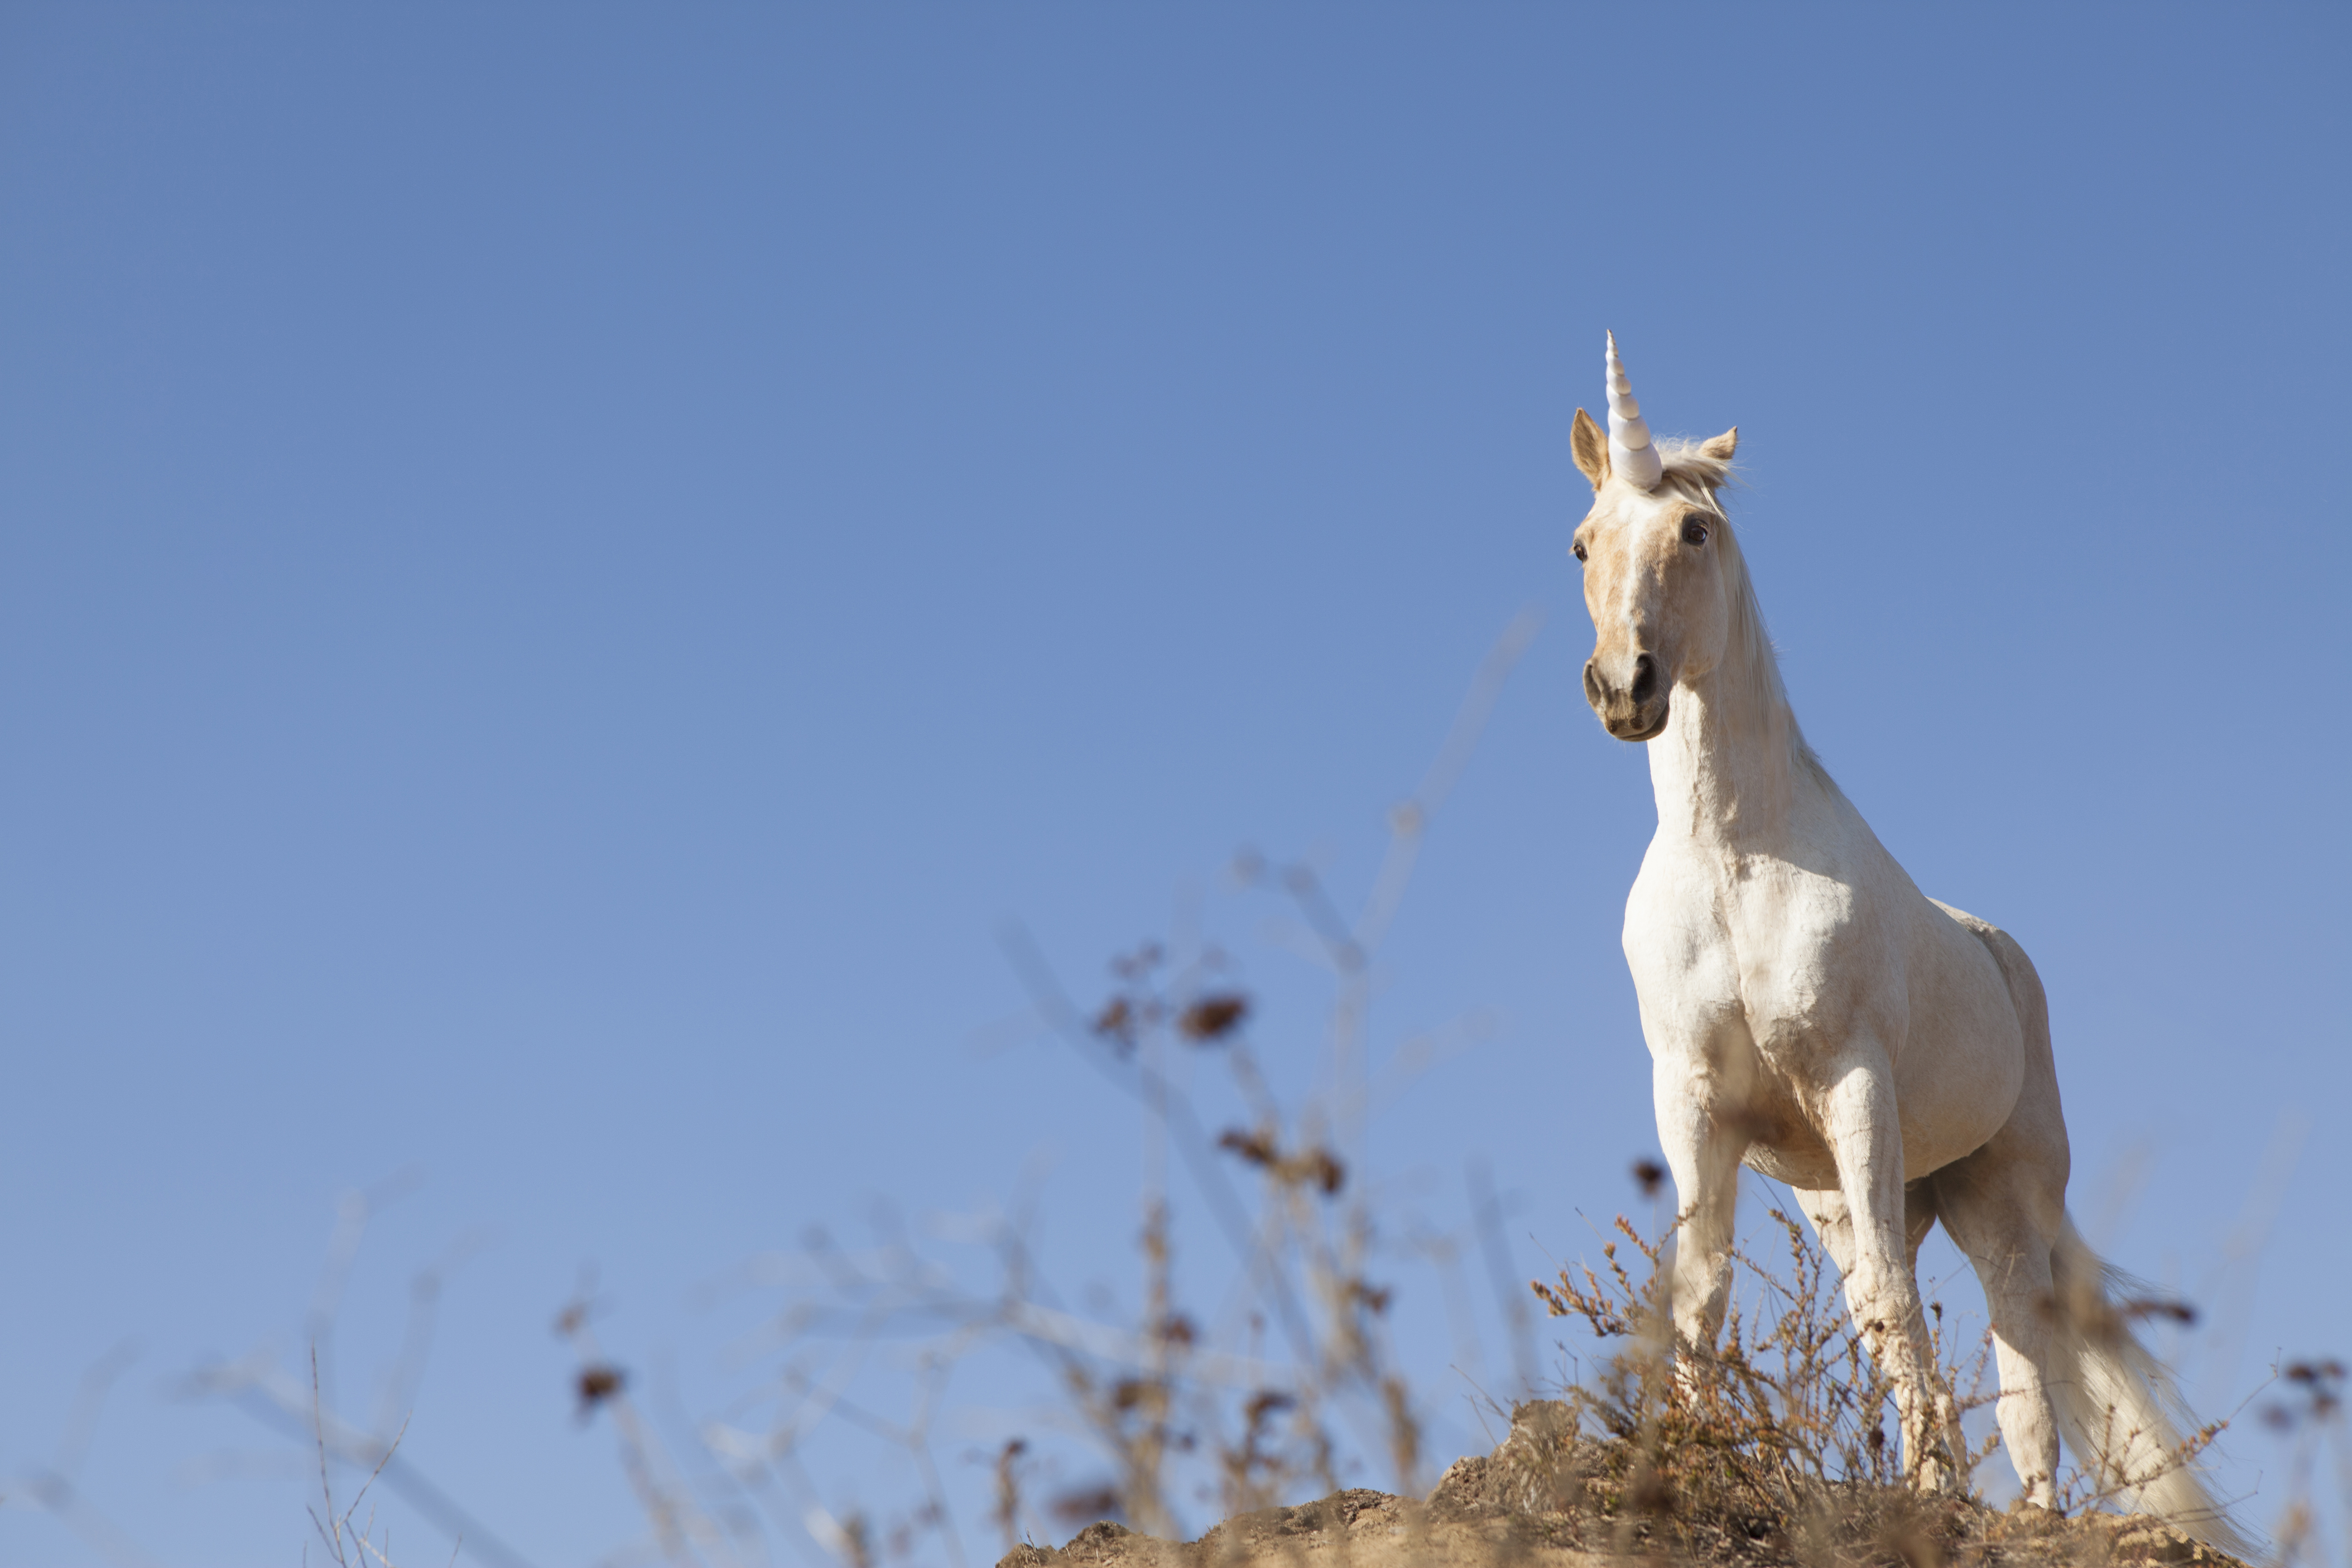 techcrunch.com - Kate Clark - Startups Weekly: Will Trump ruin the unicorn IPOs of our dreams?